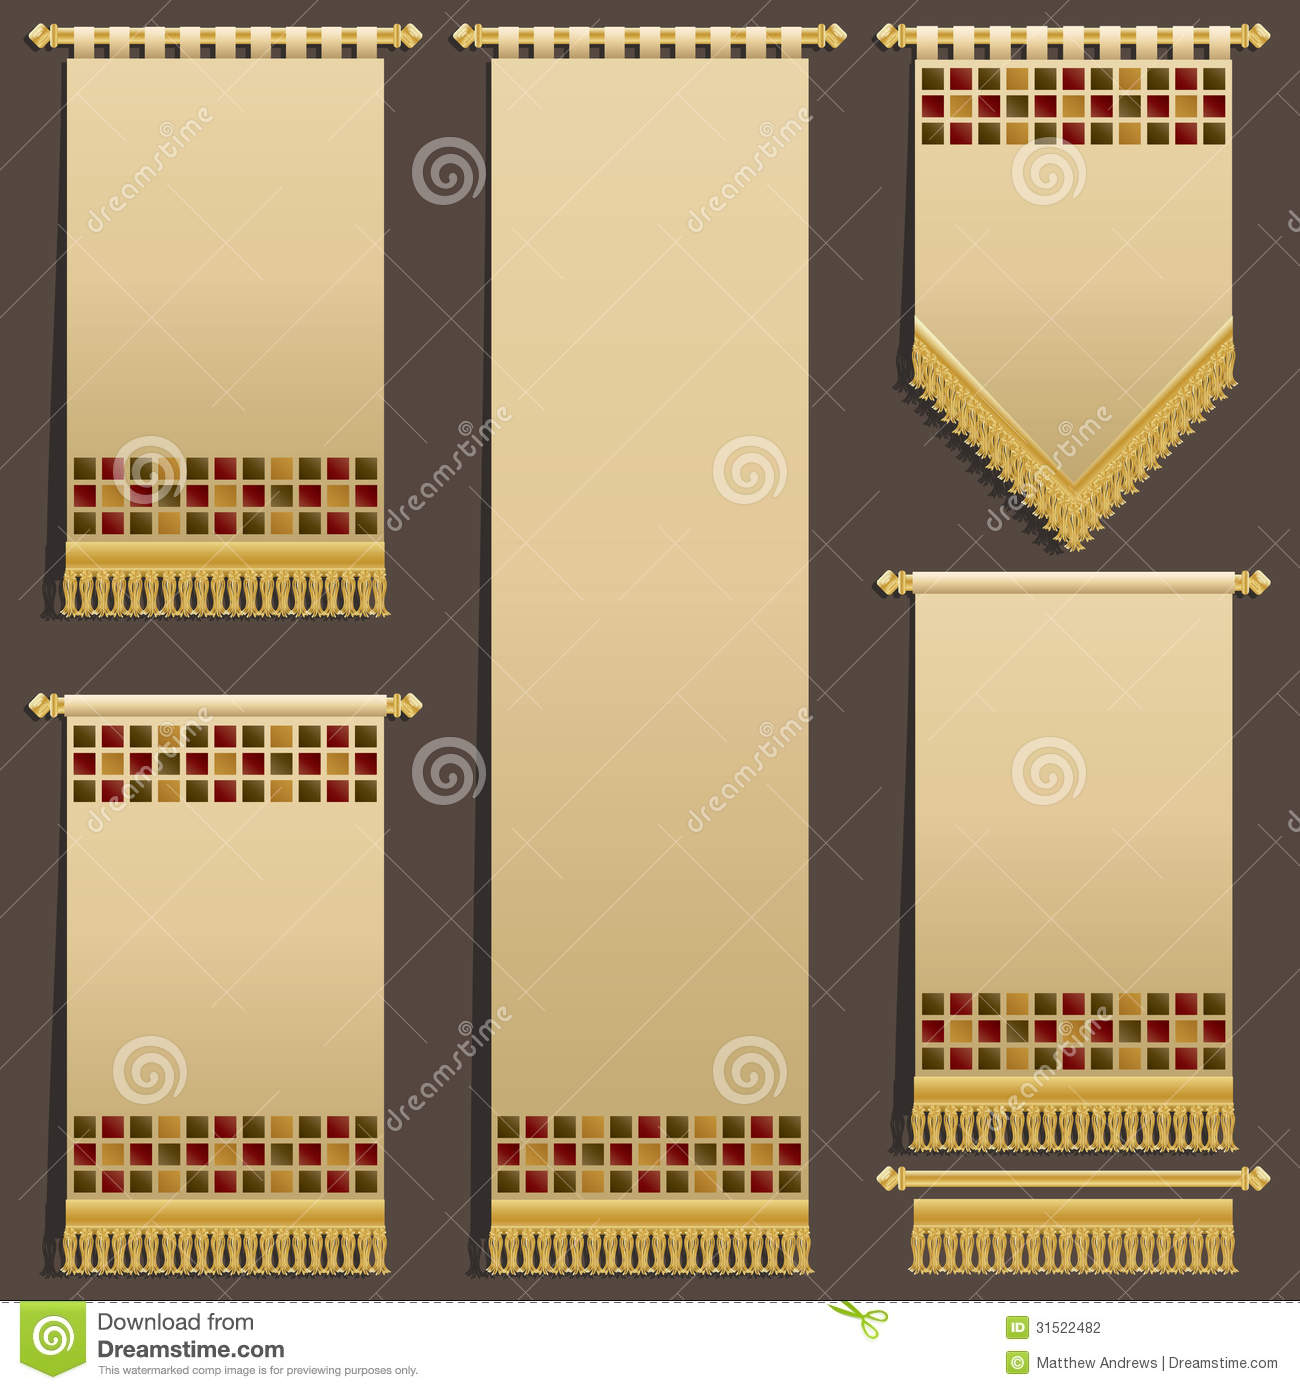 Wall hangings stock vector. Illustration of fabric, finial - 31522482